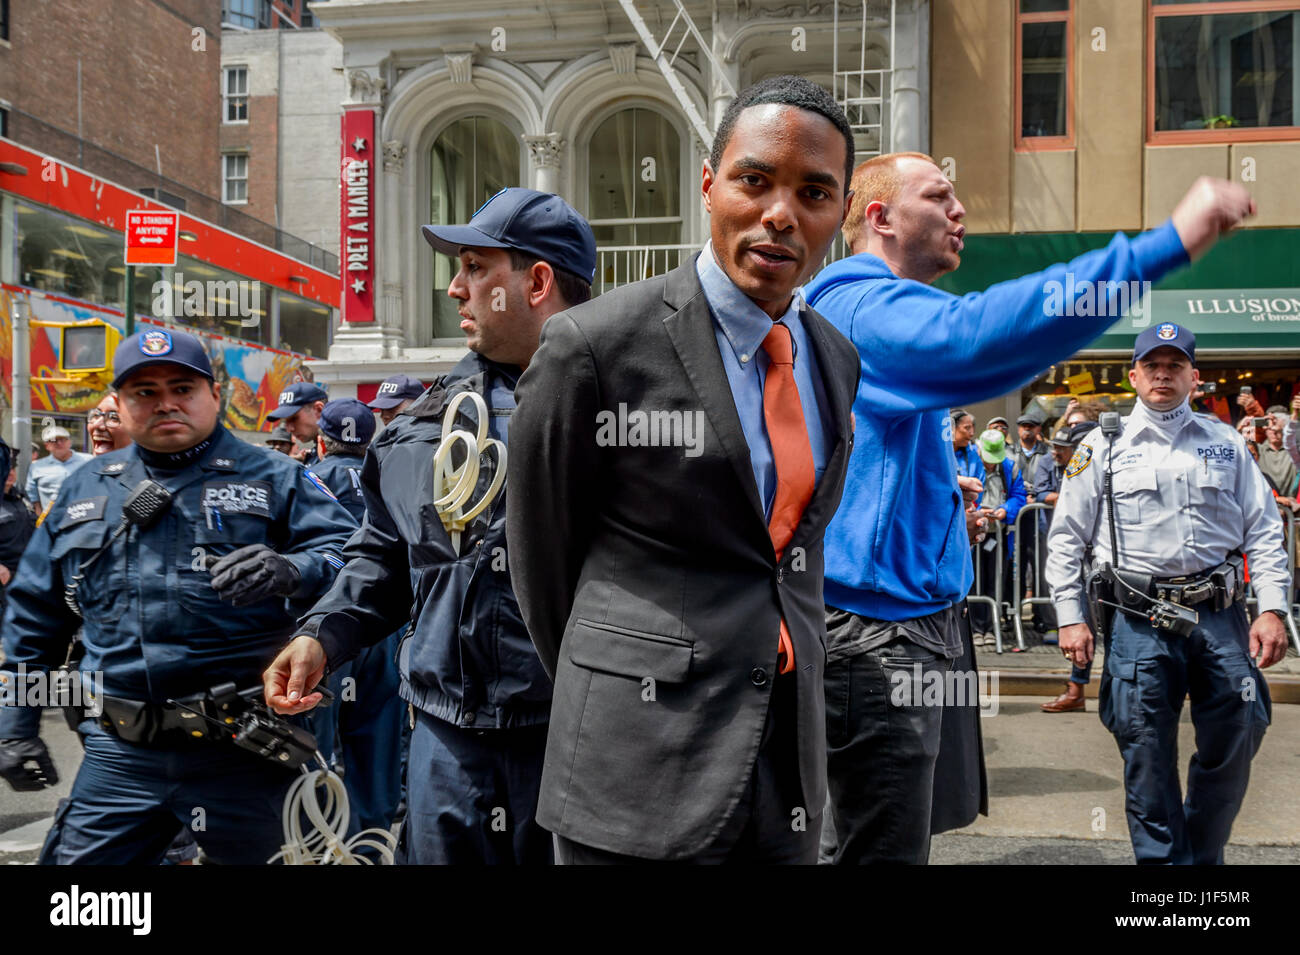 New York, USA . 20th Apr, 2017. City Councilman Ritchie Torres got arrested in an act of Peaceful Civil Disobedience. Stock Photo